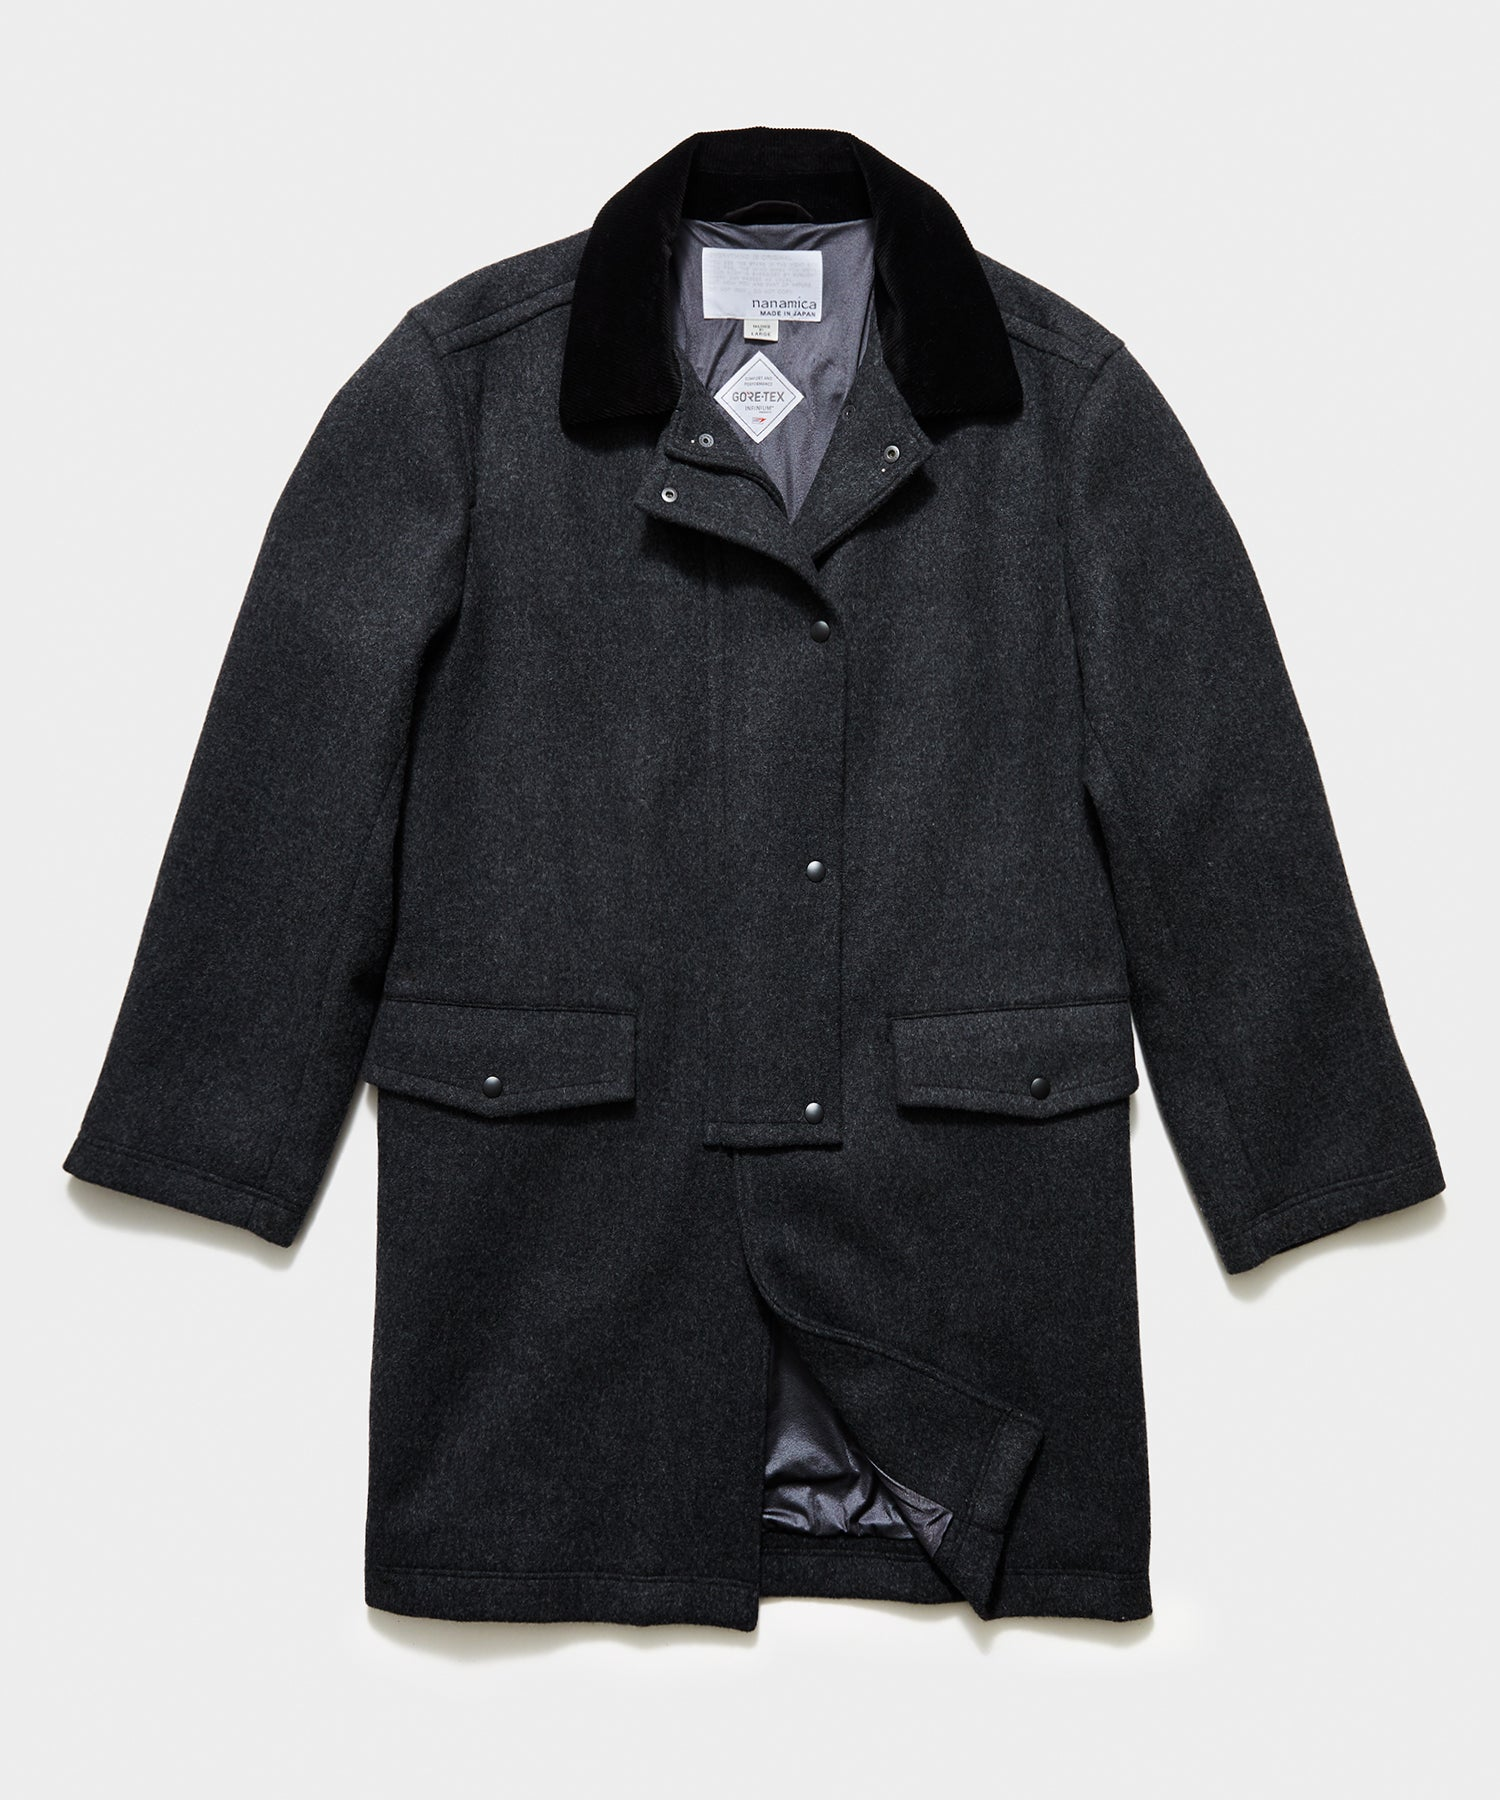 Nanamica Gore-tex Infinium Harbor Coat in Grey